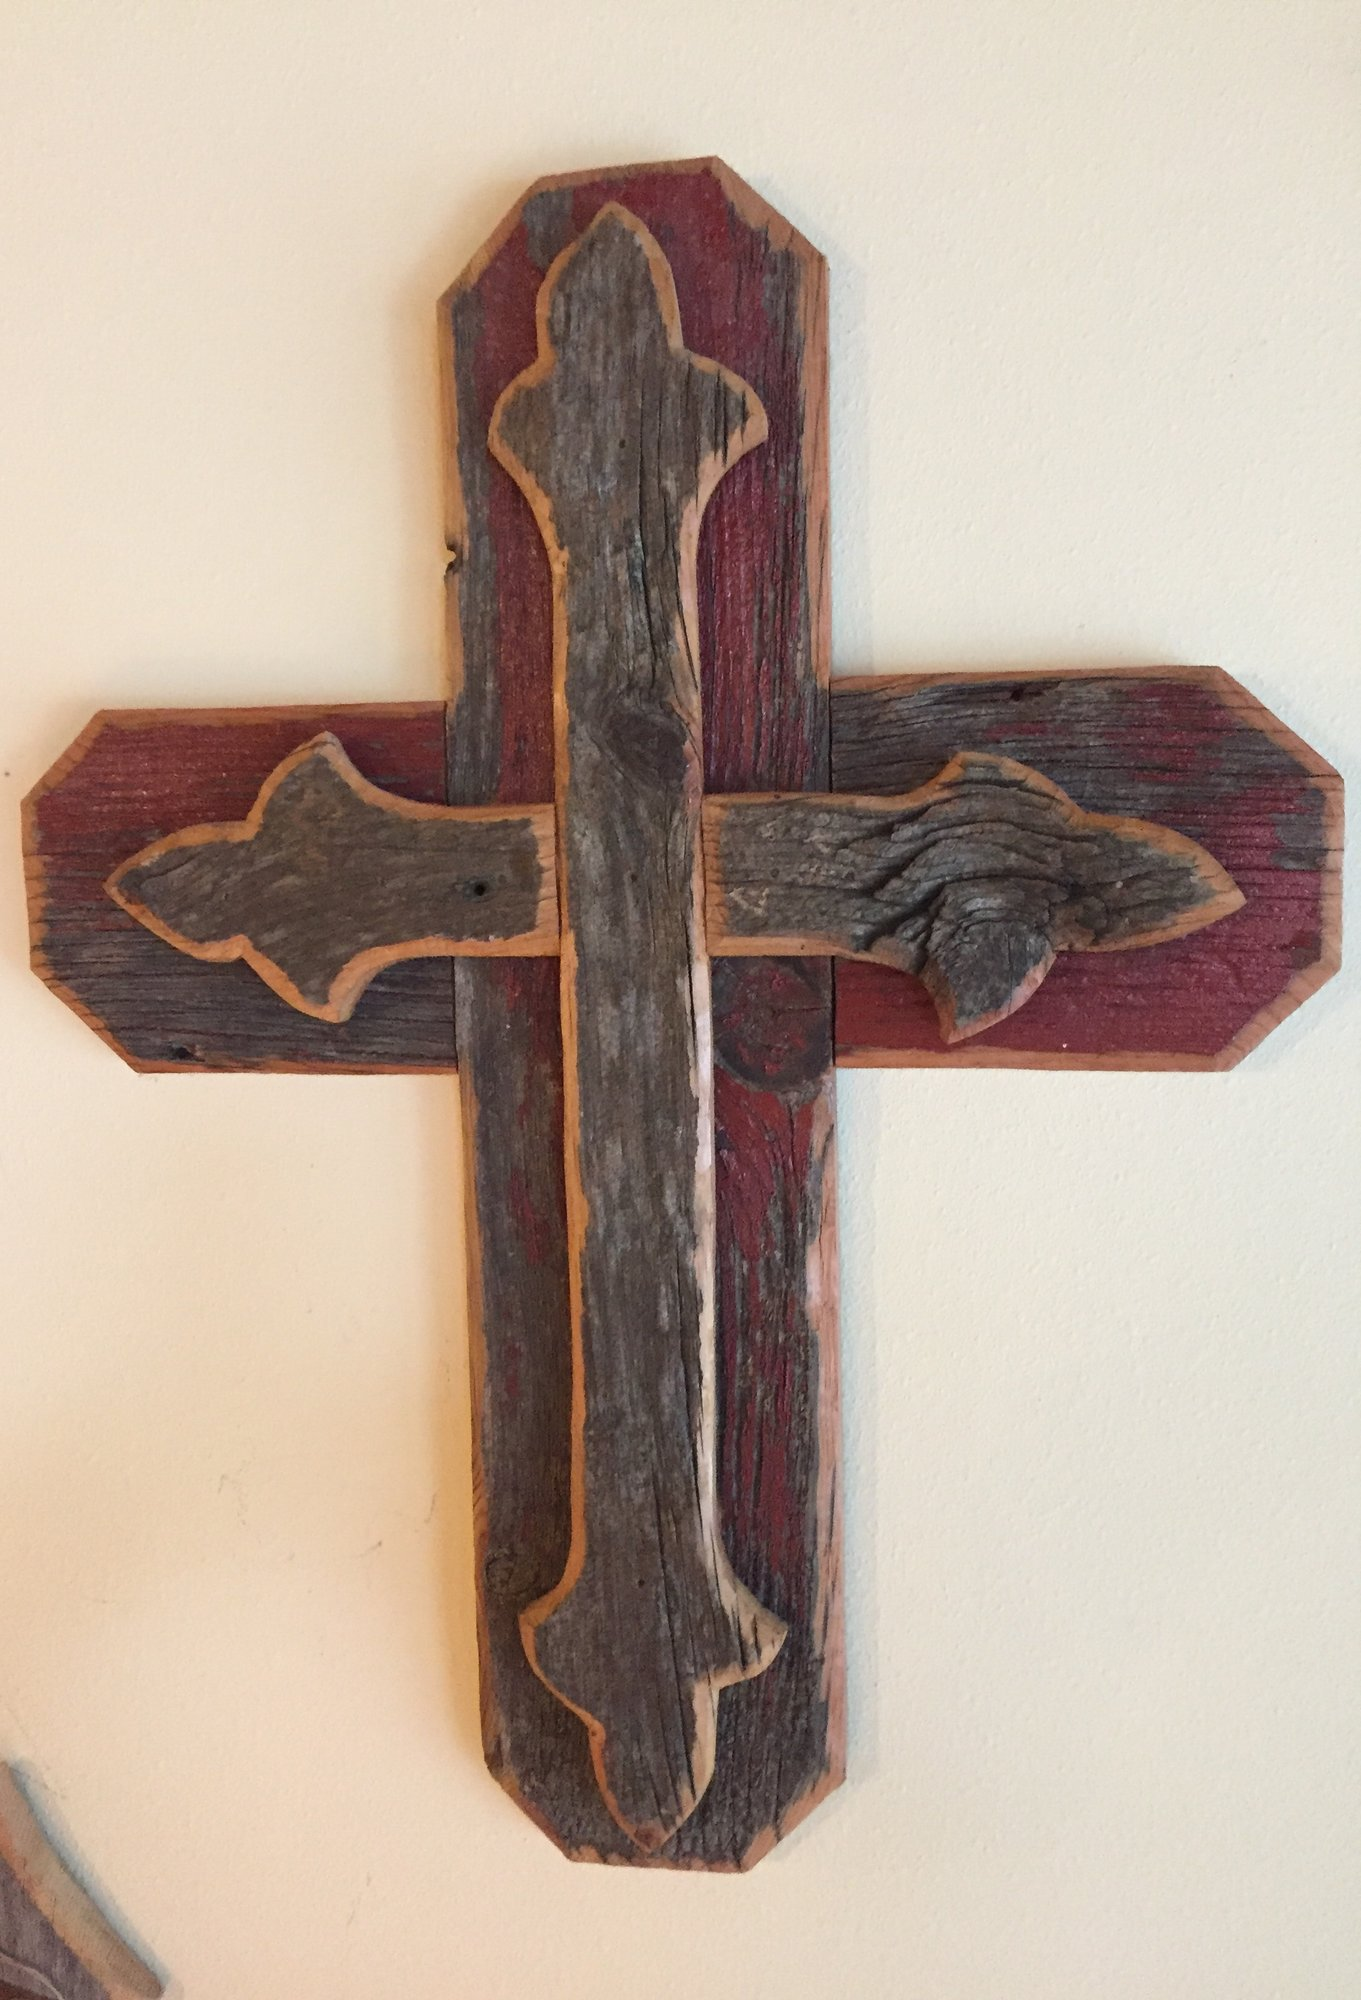 22 IN DBL WOOD CROSS<br /> <br /> H: 23 INCHES    W: 17.5 INCHES<br /> <br /> INSTORE PICK-UP OR SHIPPING